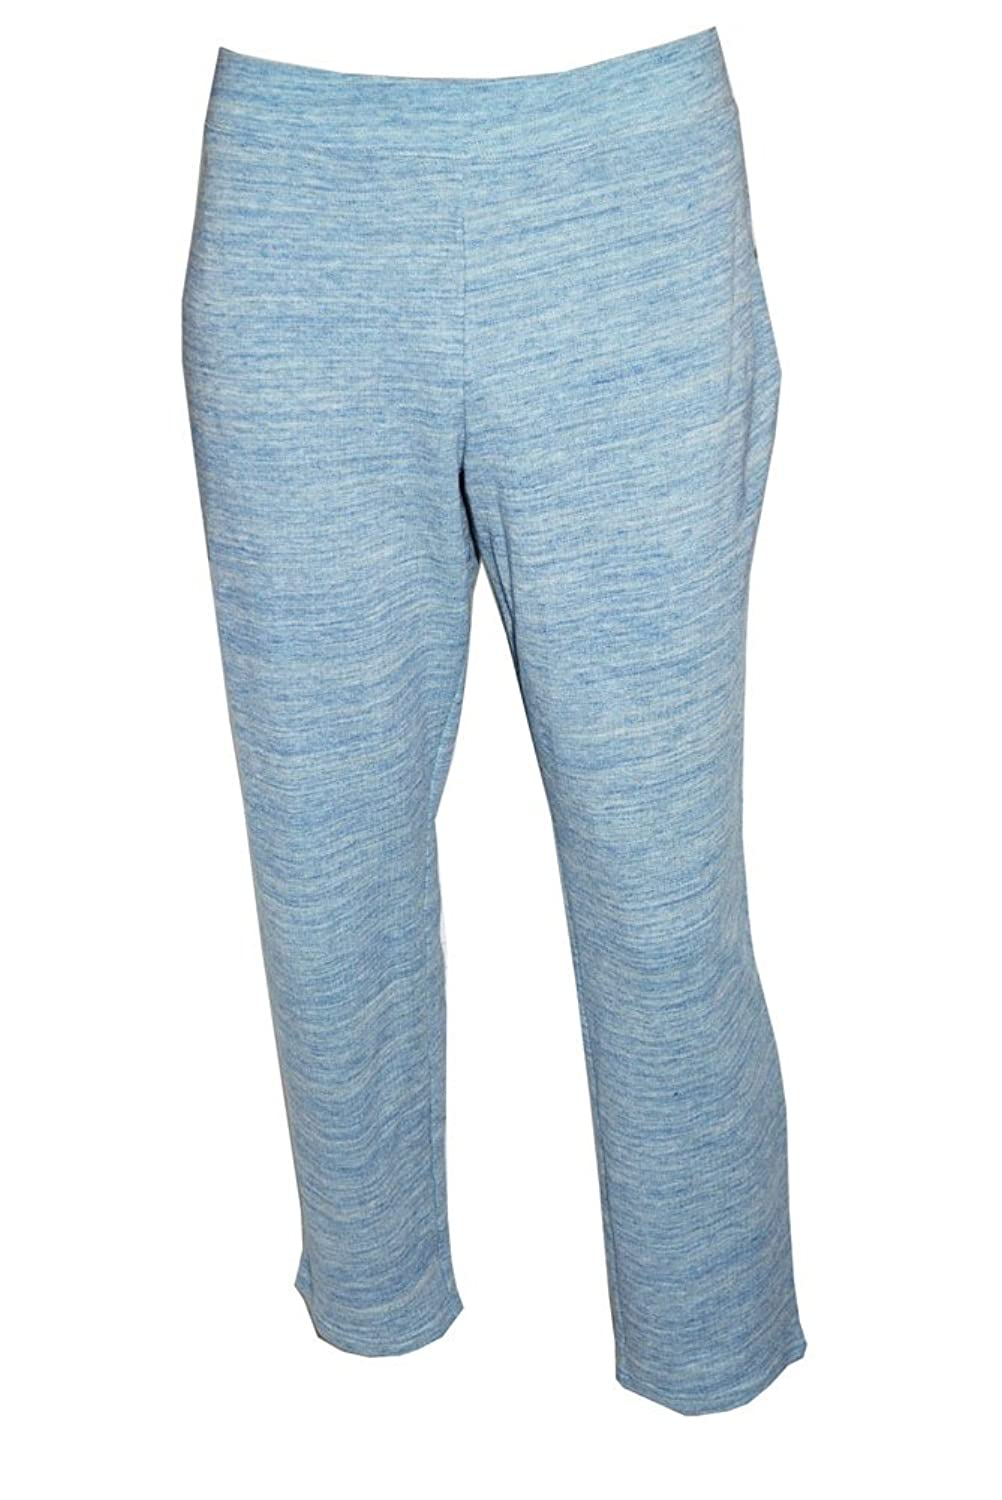 Style&co Plus Sport Women Marled Active Pants Grey/aqua Shell (1x)